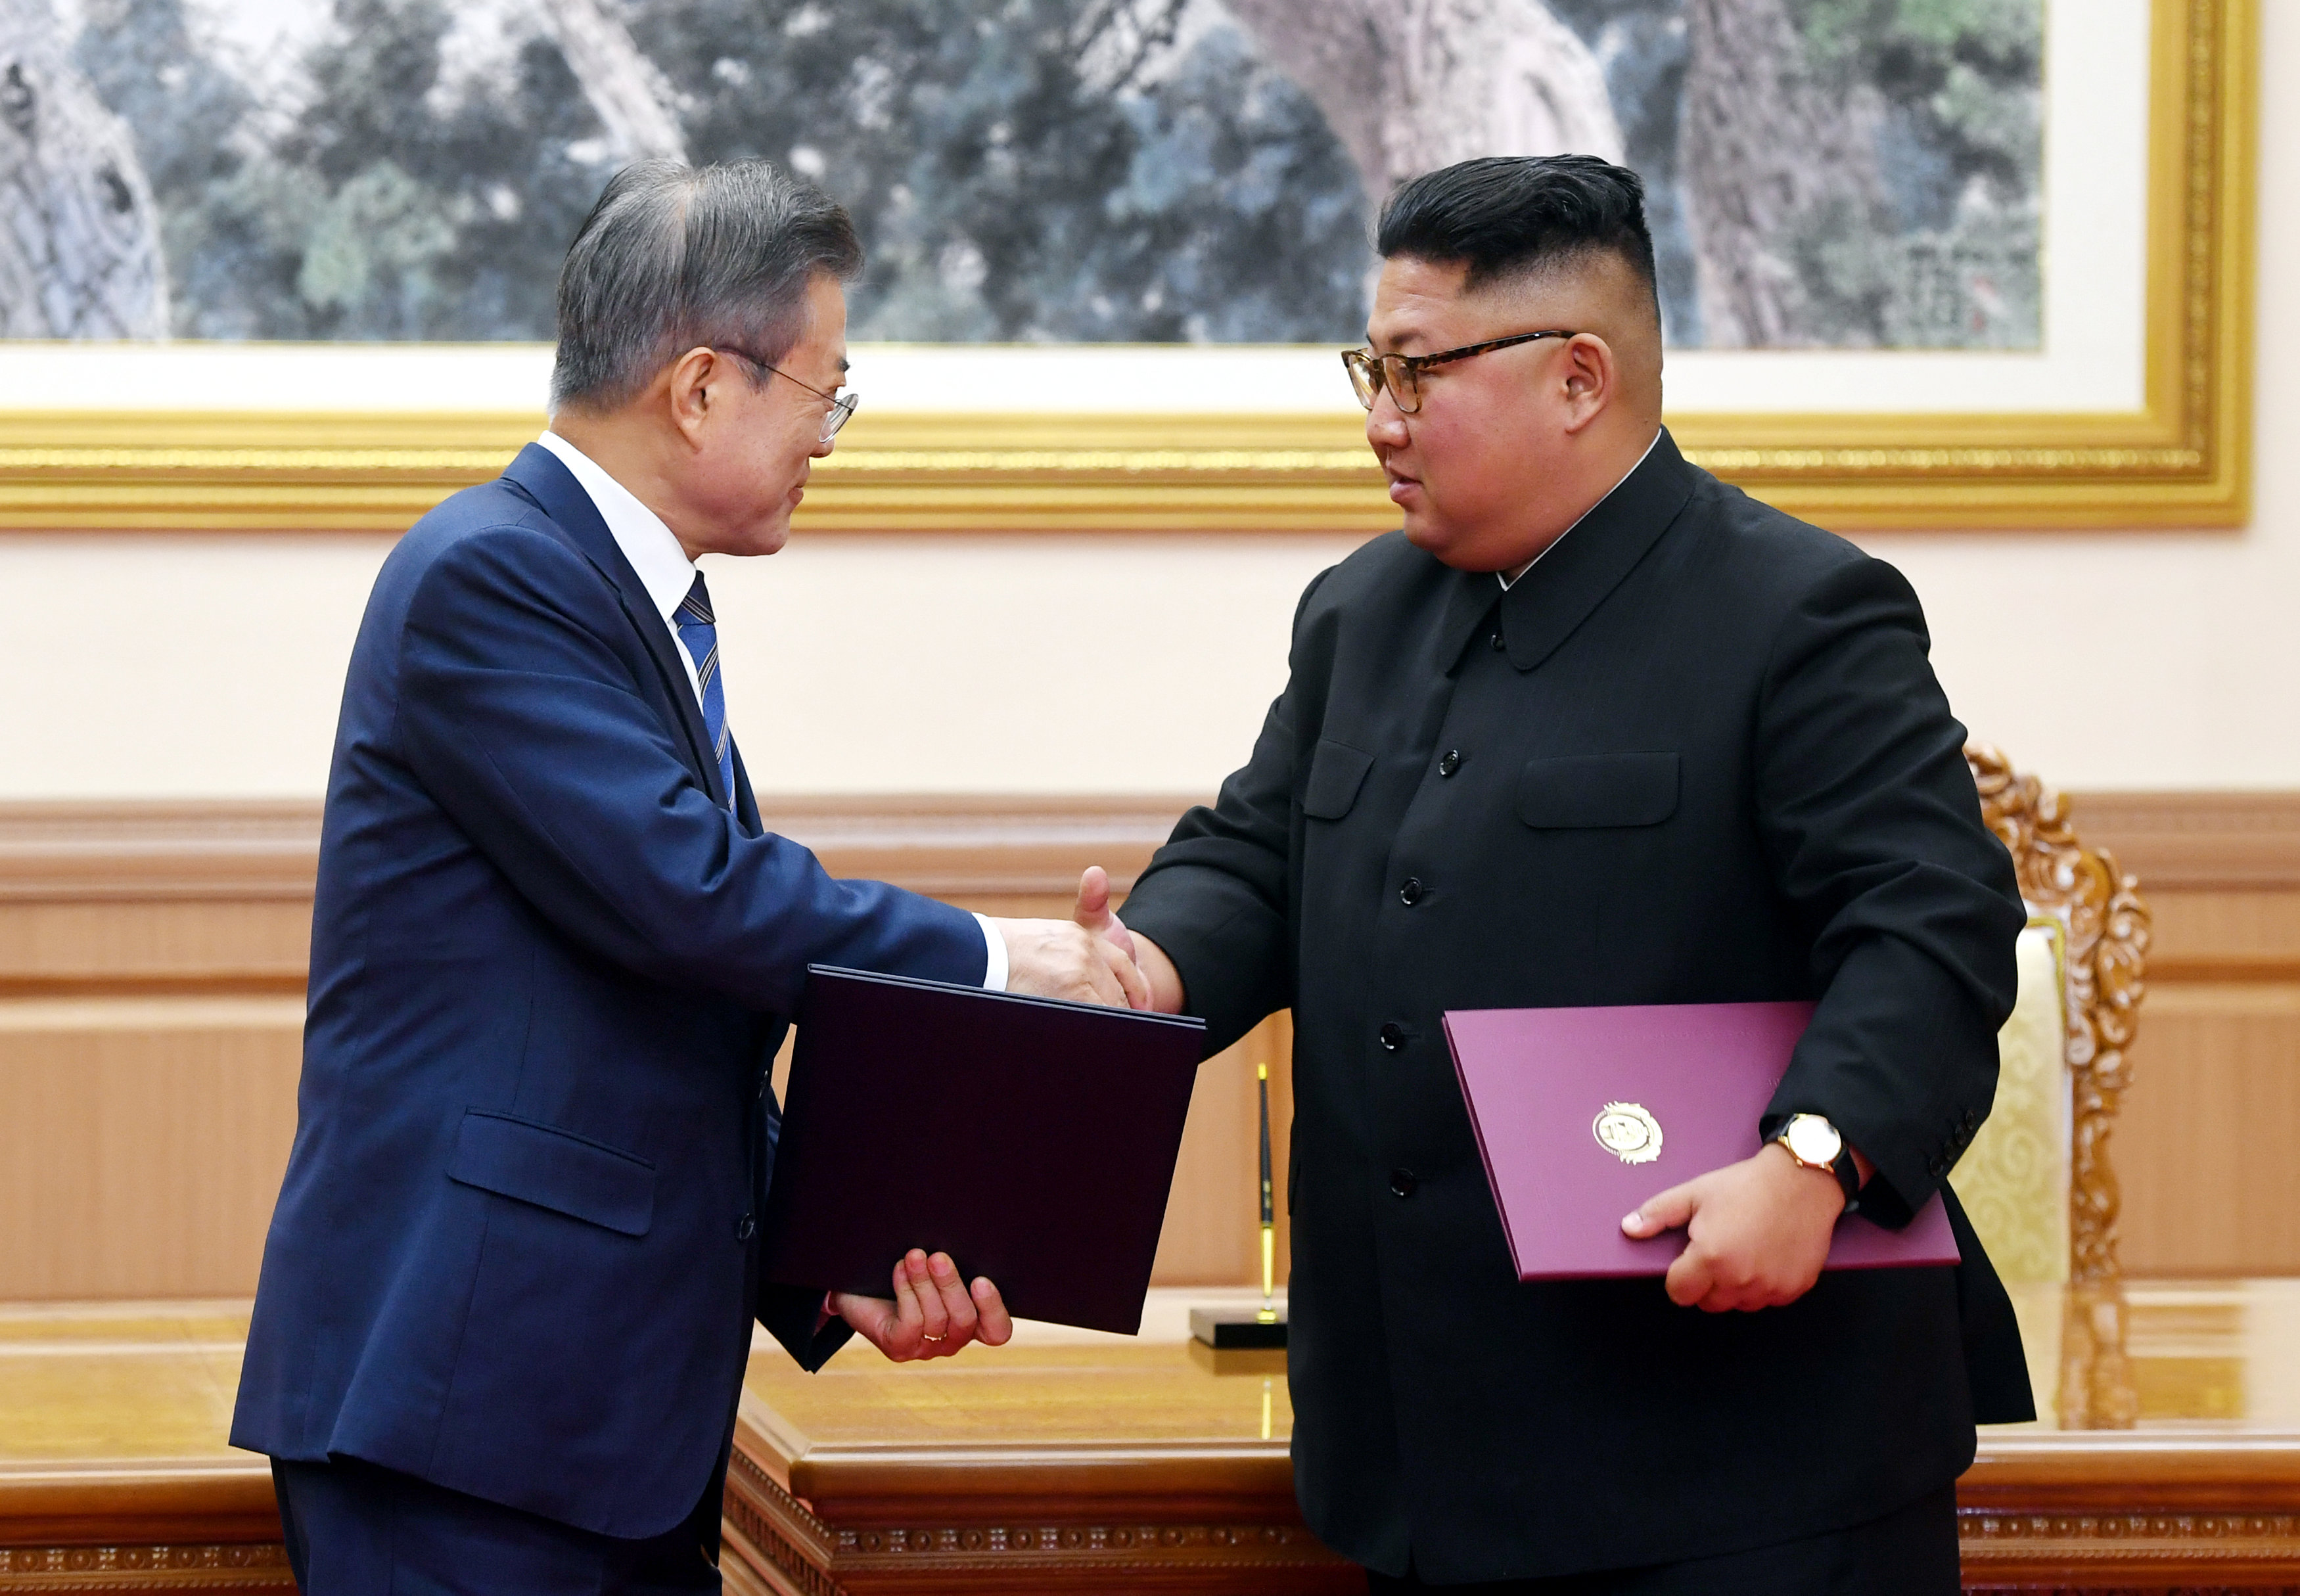 South Korean President Moon Jae-in shakes hands with North Korean leader Kim Jong Un after signing the joint statement in Pyongyang, North Korea, September 19, 2018. Pyeongyang Press Corps/Pool via REUTERS